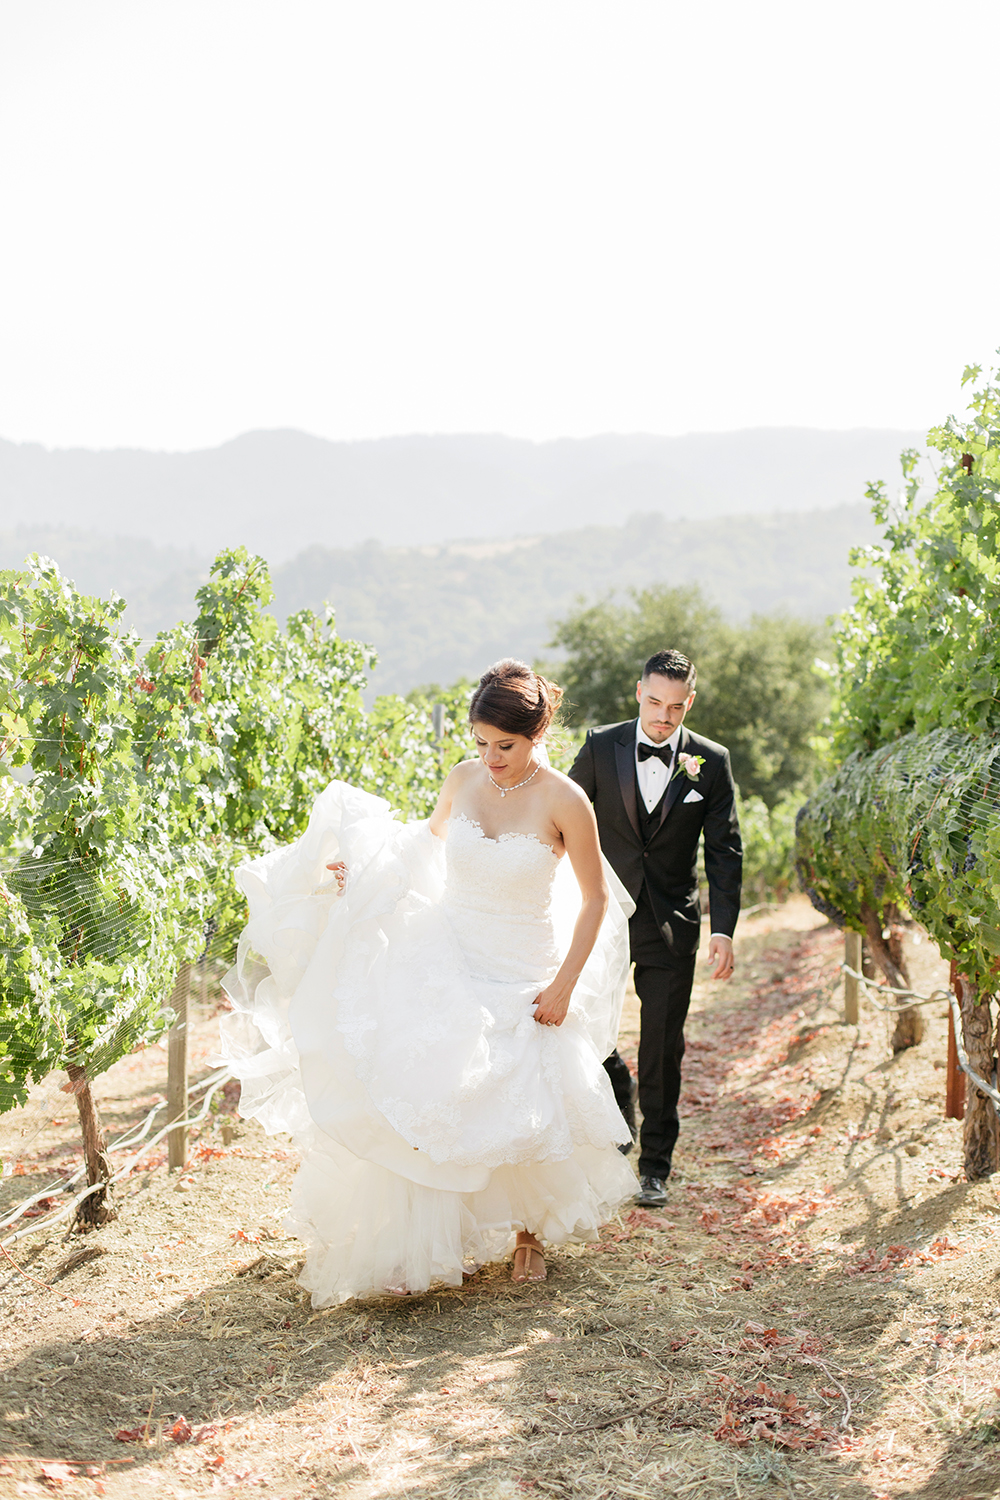 Bride and groom walking in a vineyard at their wedding in Saratoga, California.